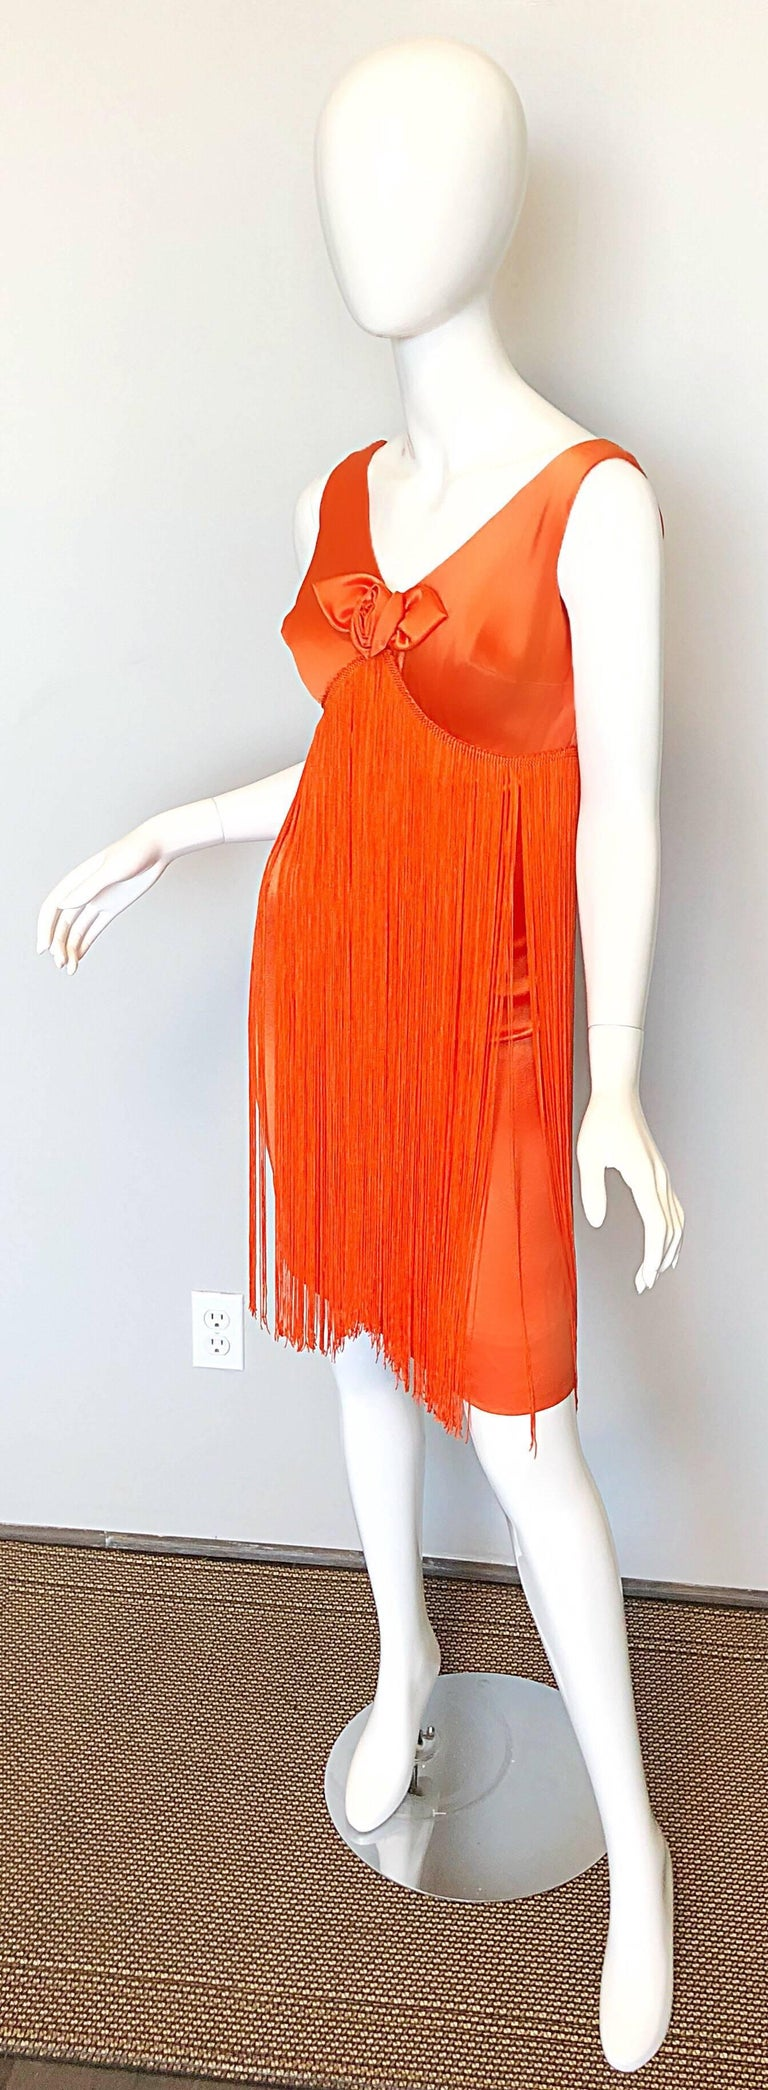 Joseph Magnin 1960s Amazing Bright Orange Fully Fringe Flapper Jersey 60s Dress In Excellent Condition For Sale In Chicago, IL